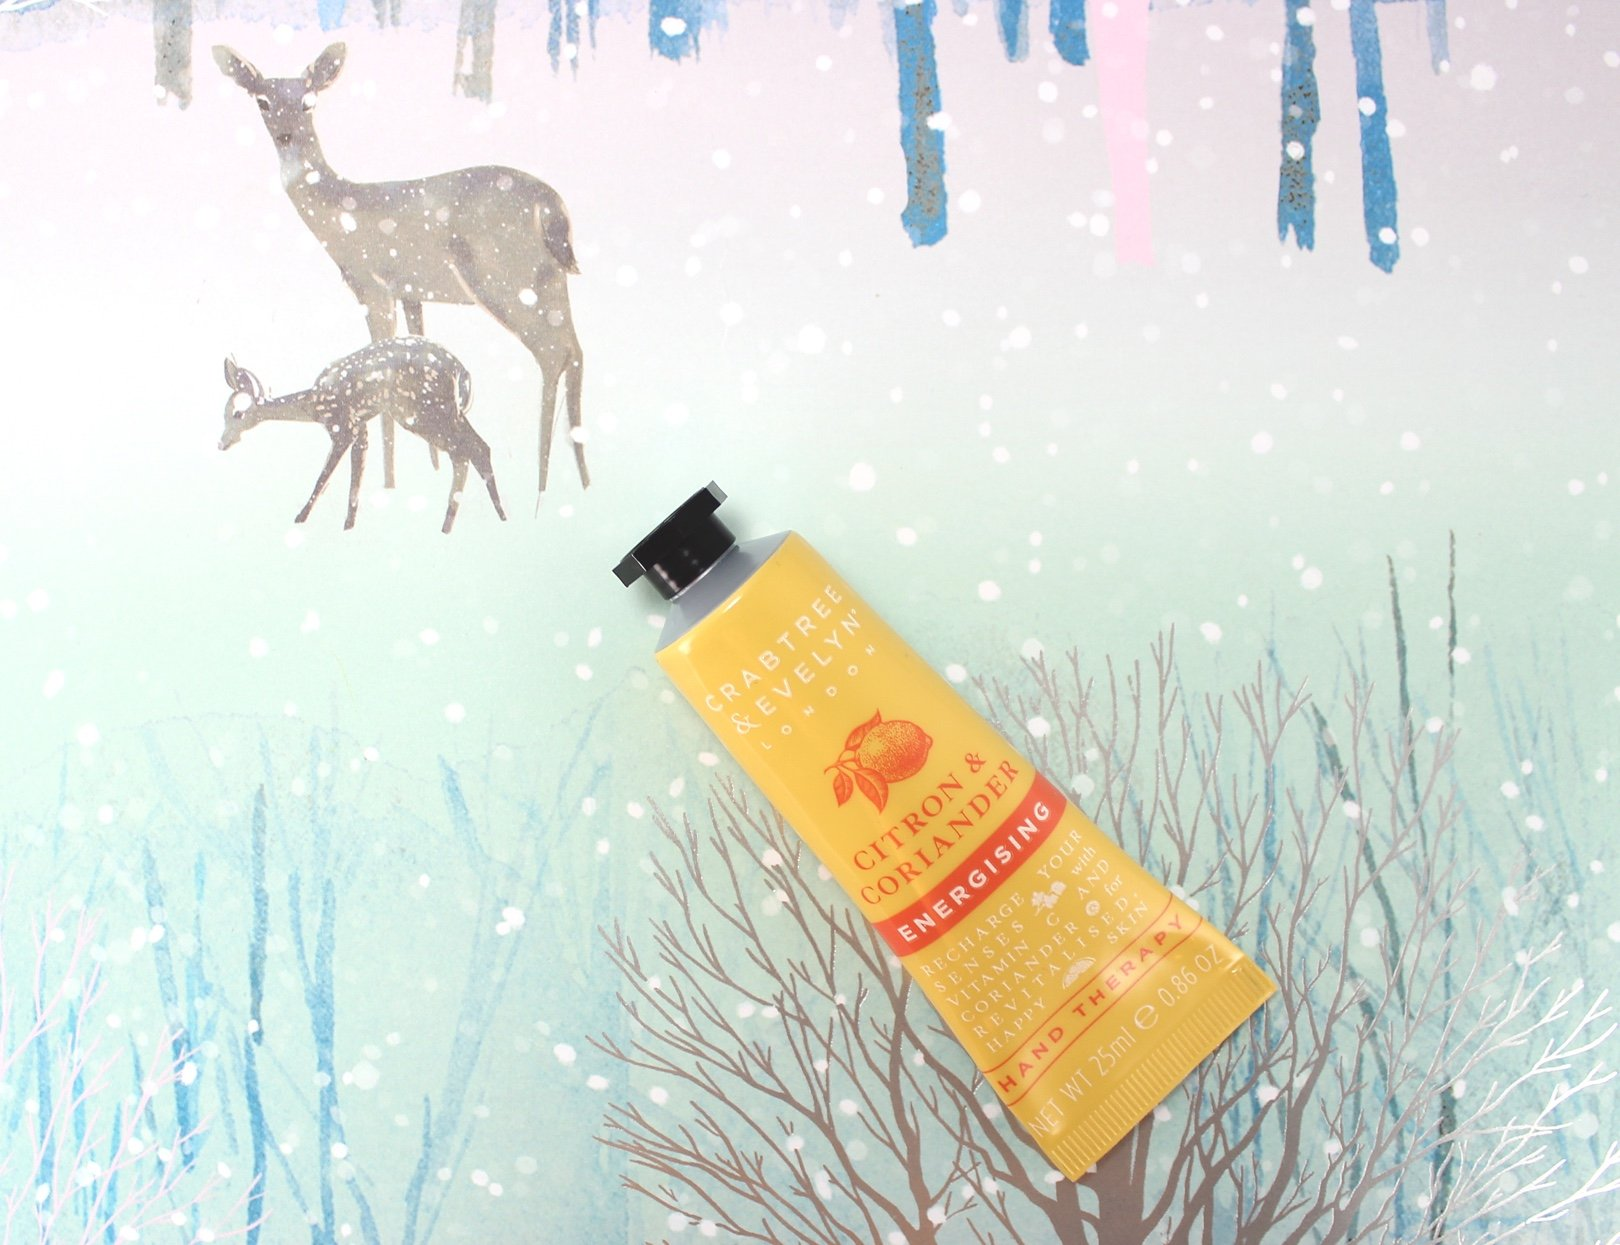 12 days of crabtree & evelyn advent calendar day 11